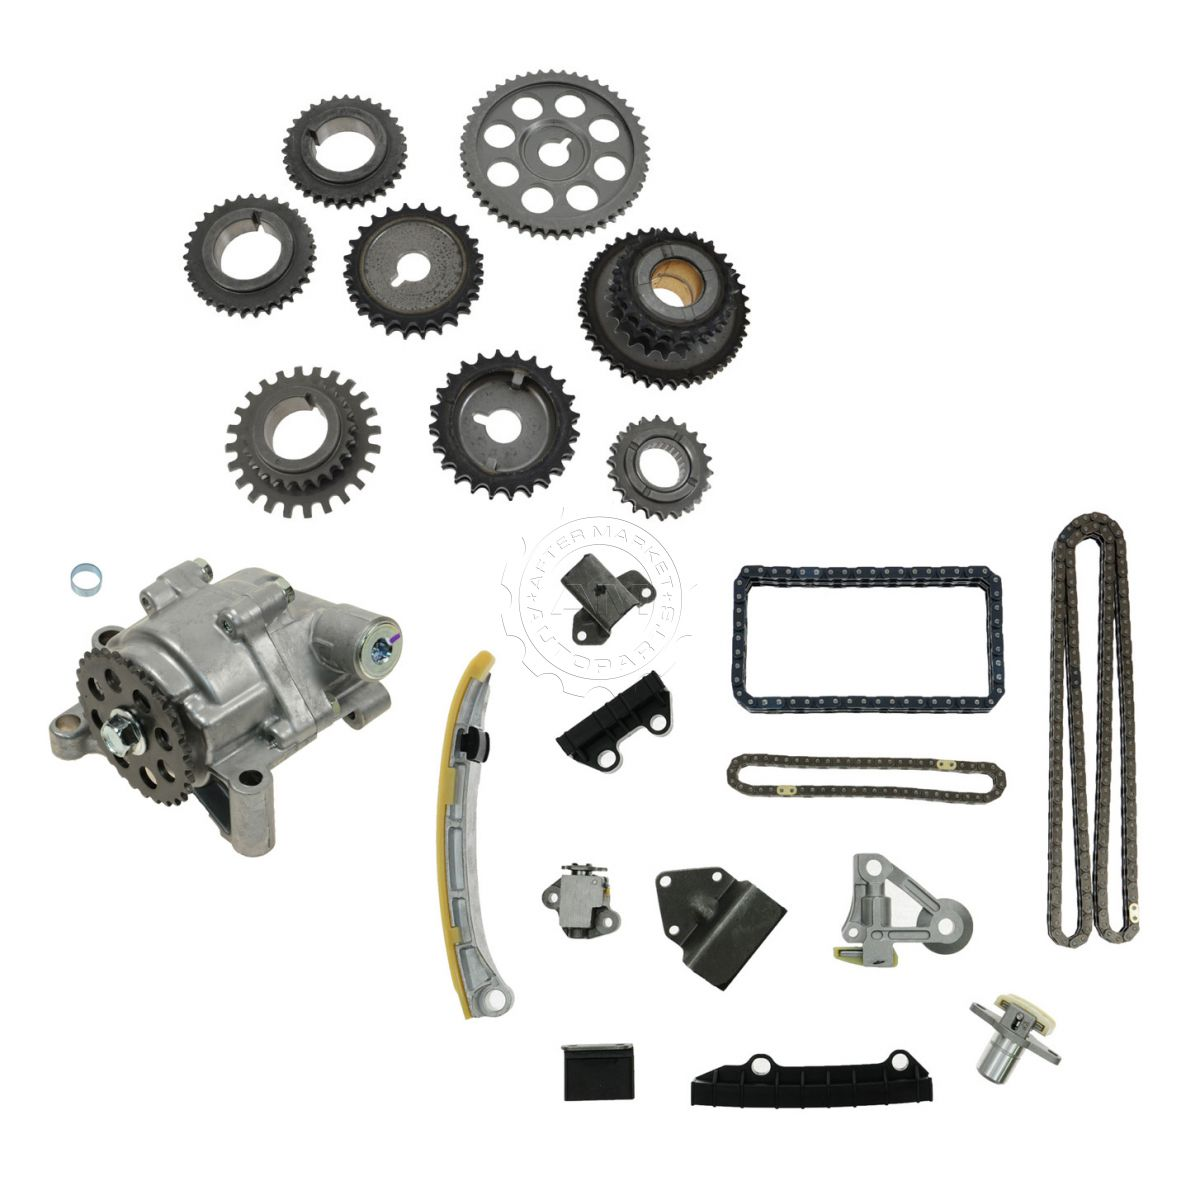 Timing Chain Sprockets Oil Pump Kit Set For Suzuki 2 5l 2